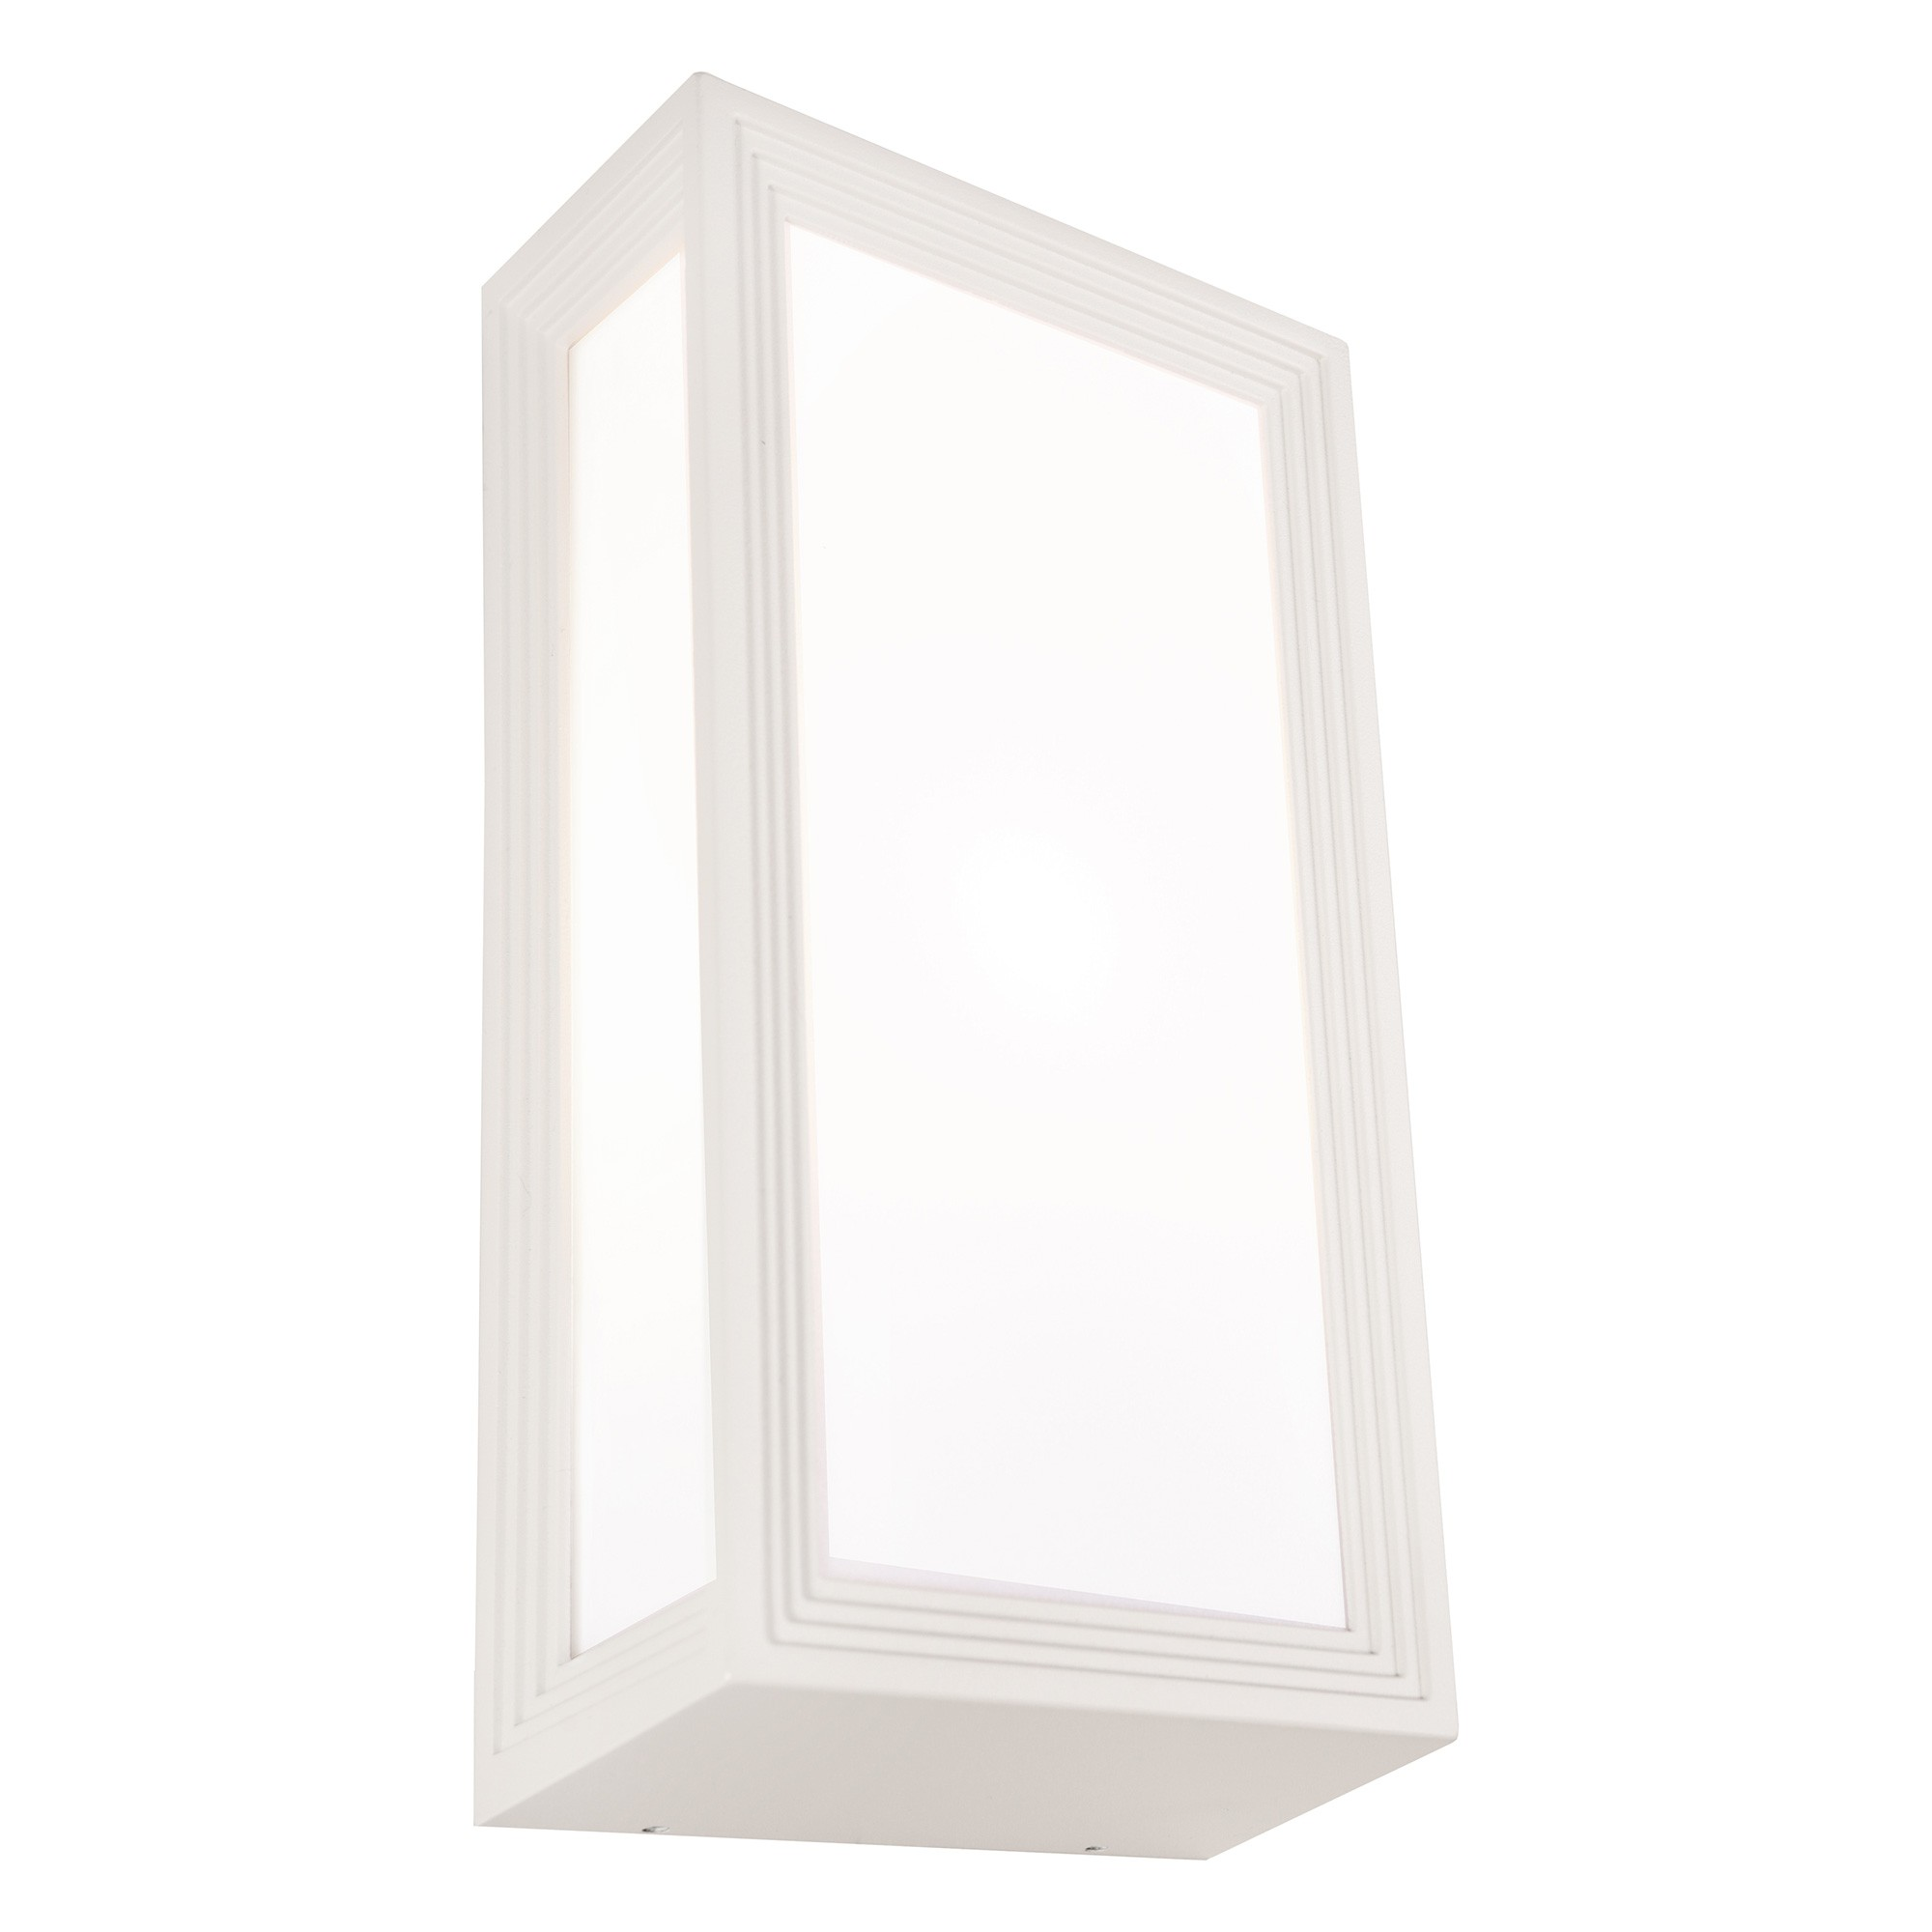 Lyon IP54 Exterior Wall Light, White